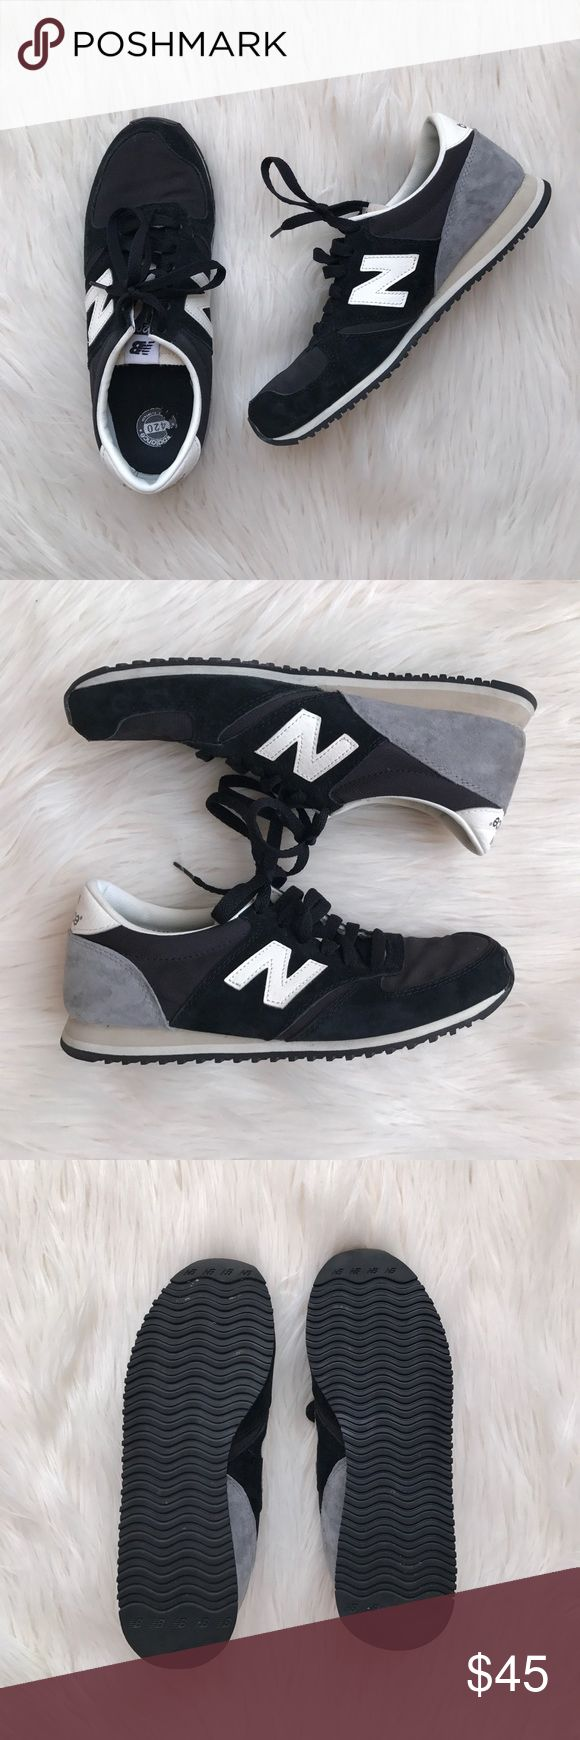 New Balance 420 Suede Runner Trainers in Black Urban Outfitters - Only worn a few times, like new condition! New Balance Shoes Athletic Shoes